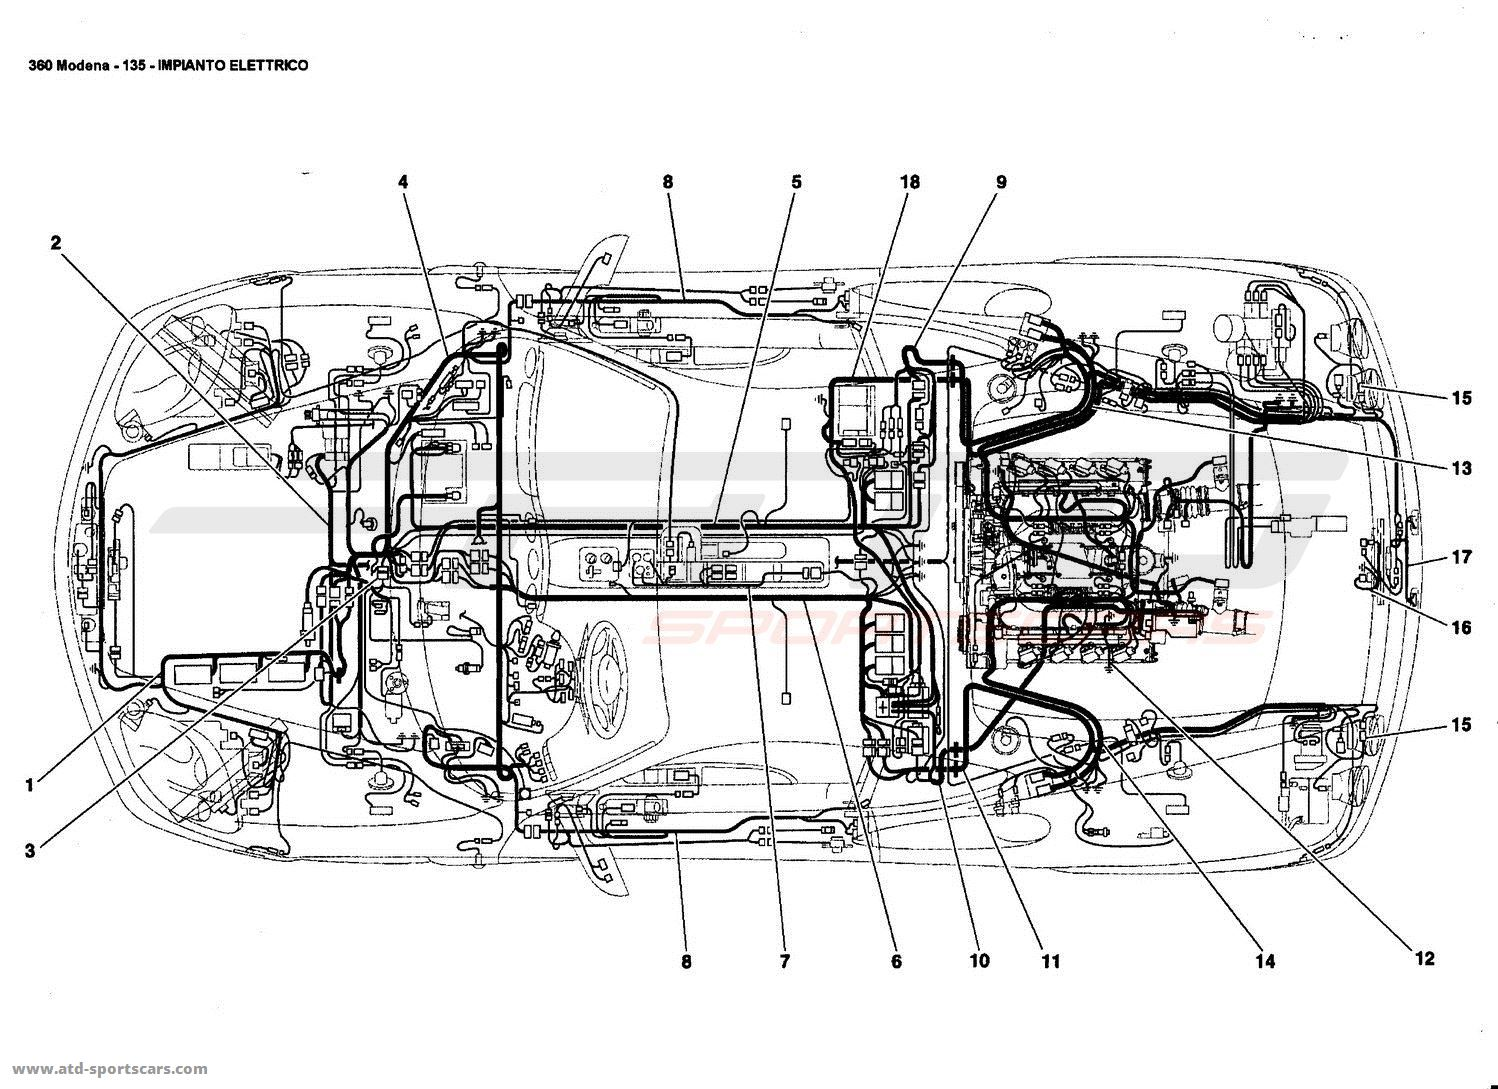 ferrari 360 modena electrical system parts at atd